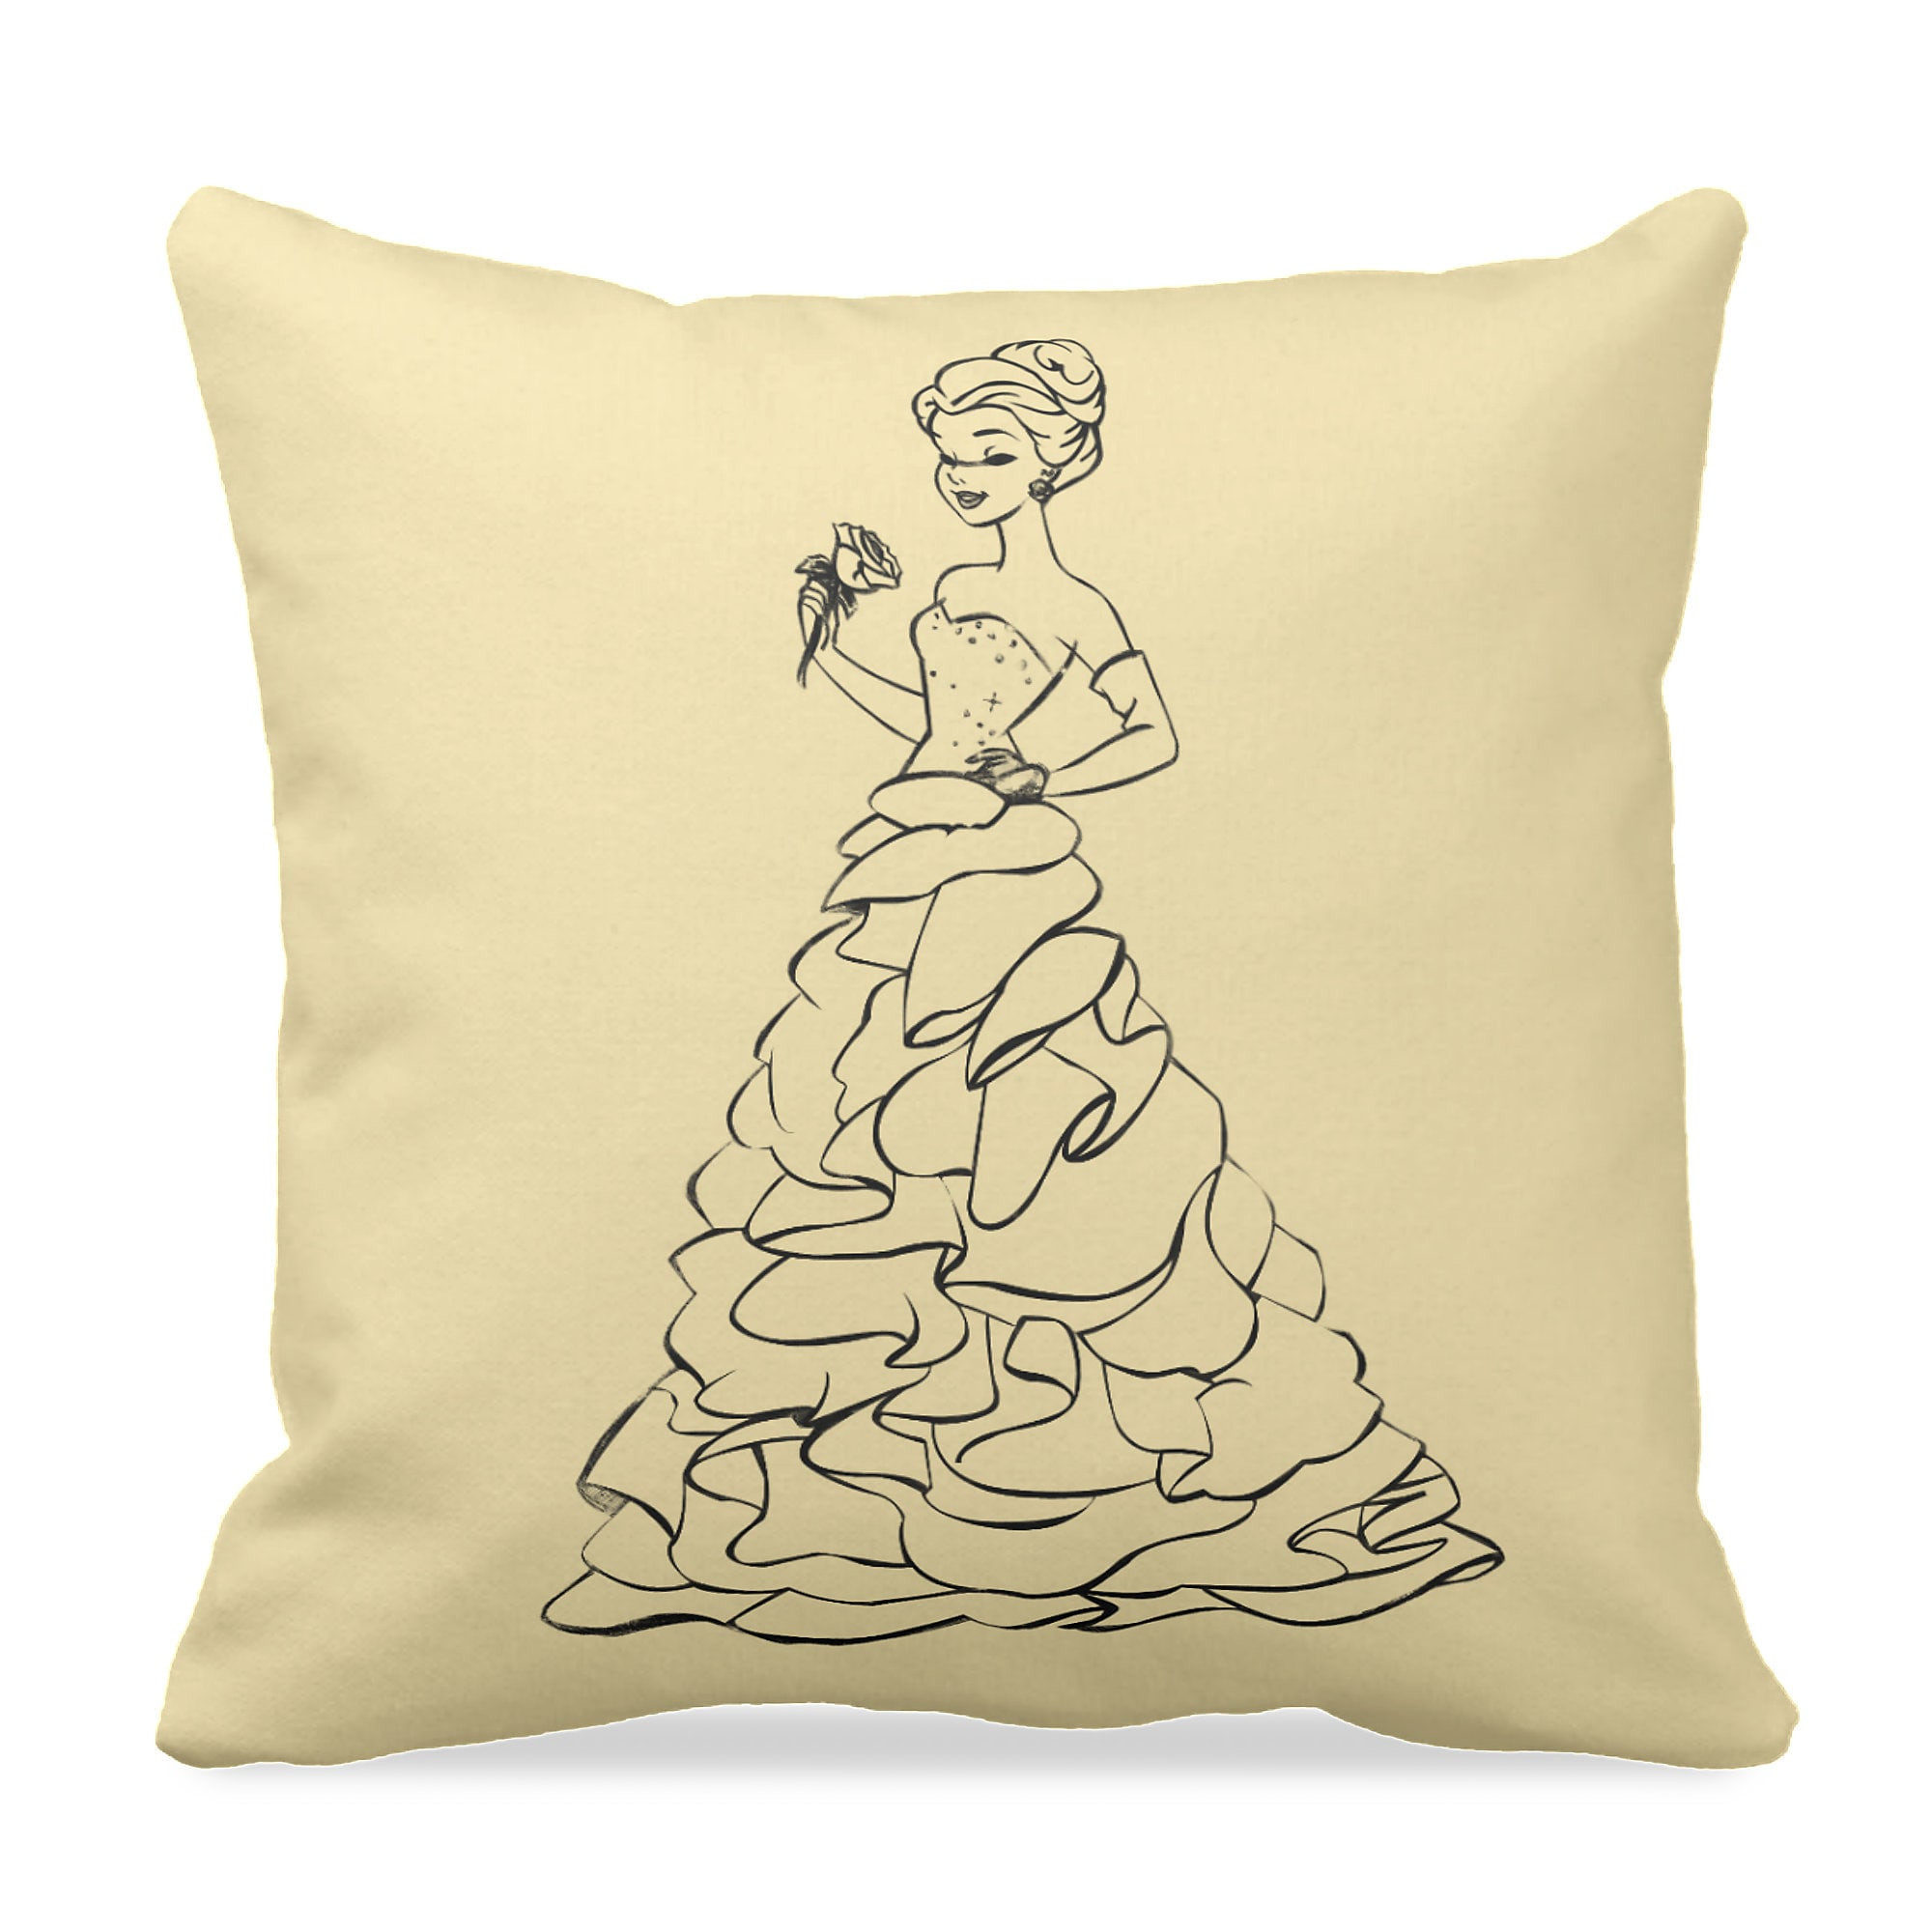 Throw Pillow Website : Beauty and the Beast Official Site Disney Movies